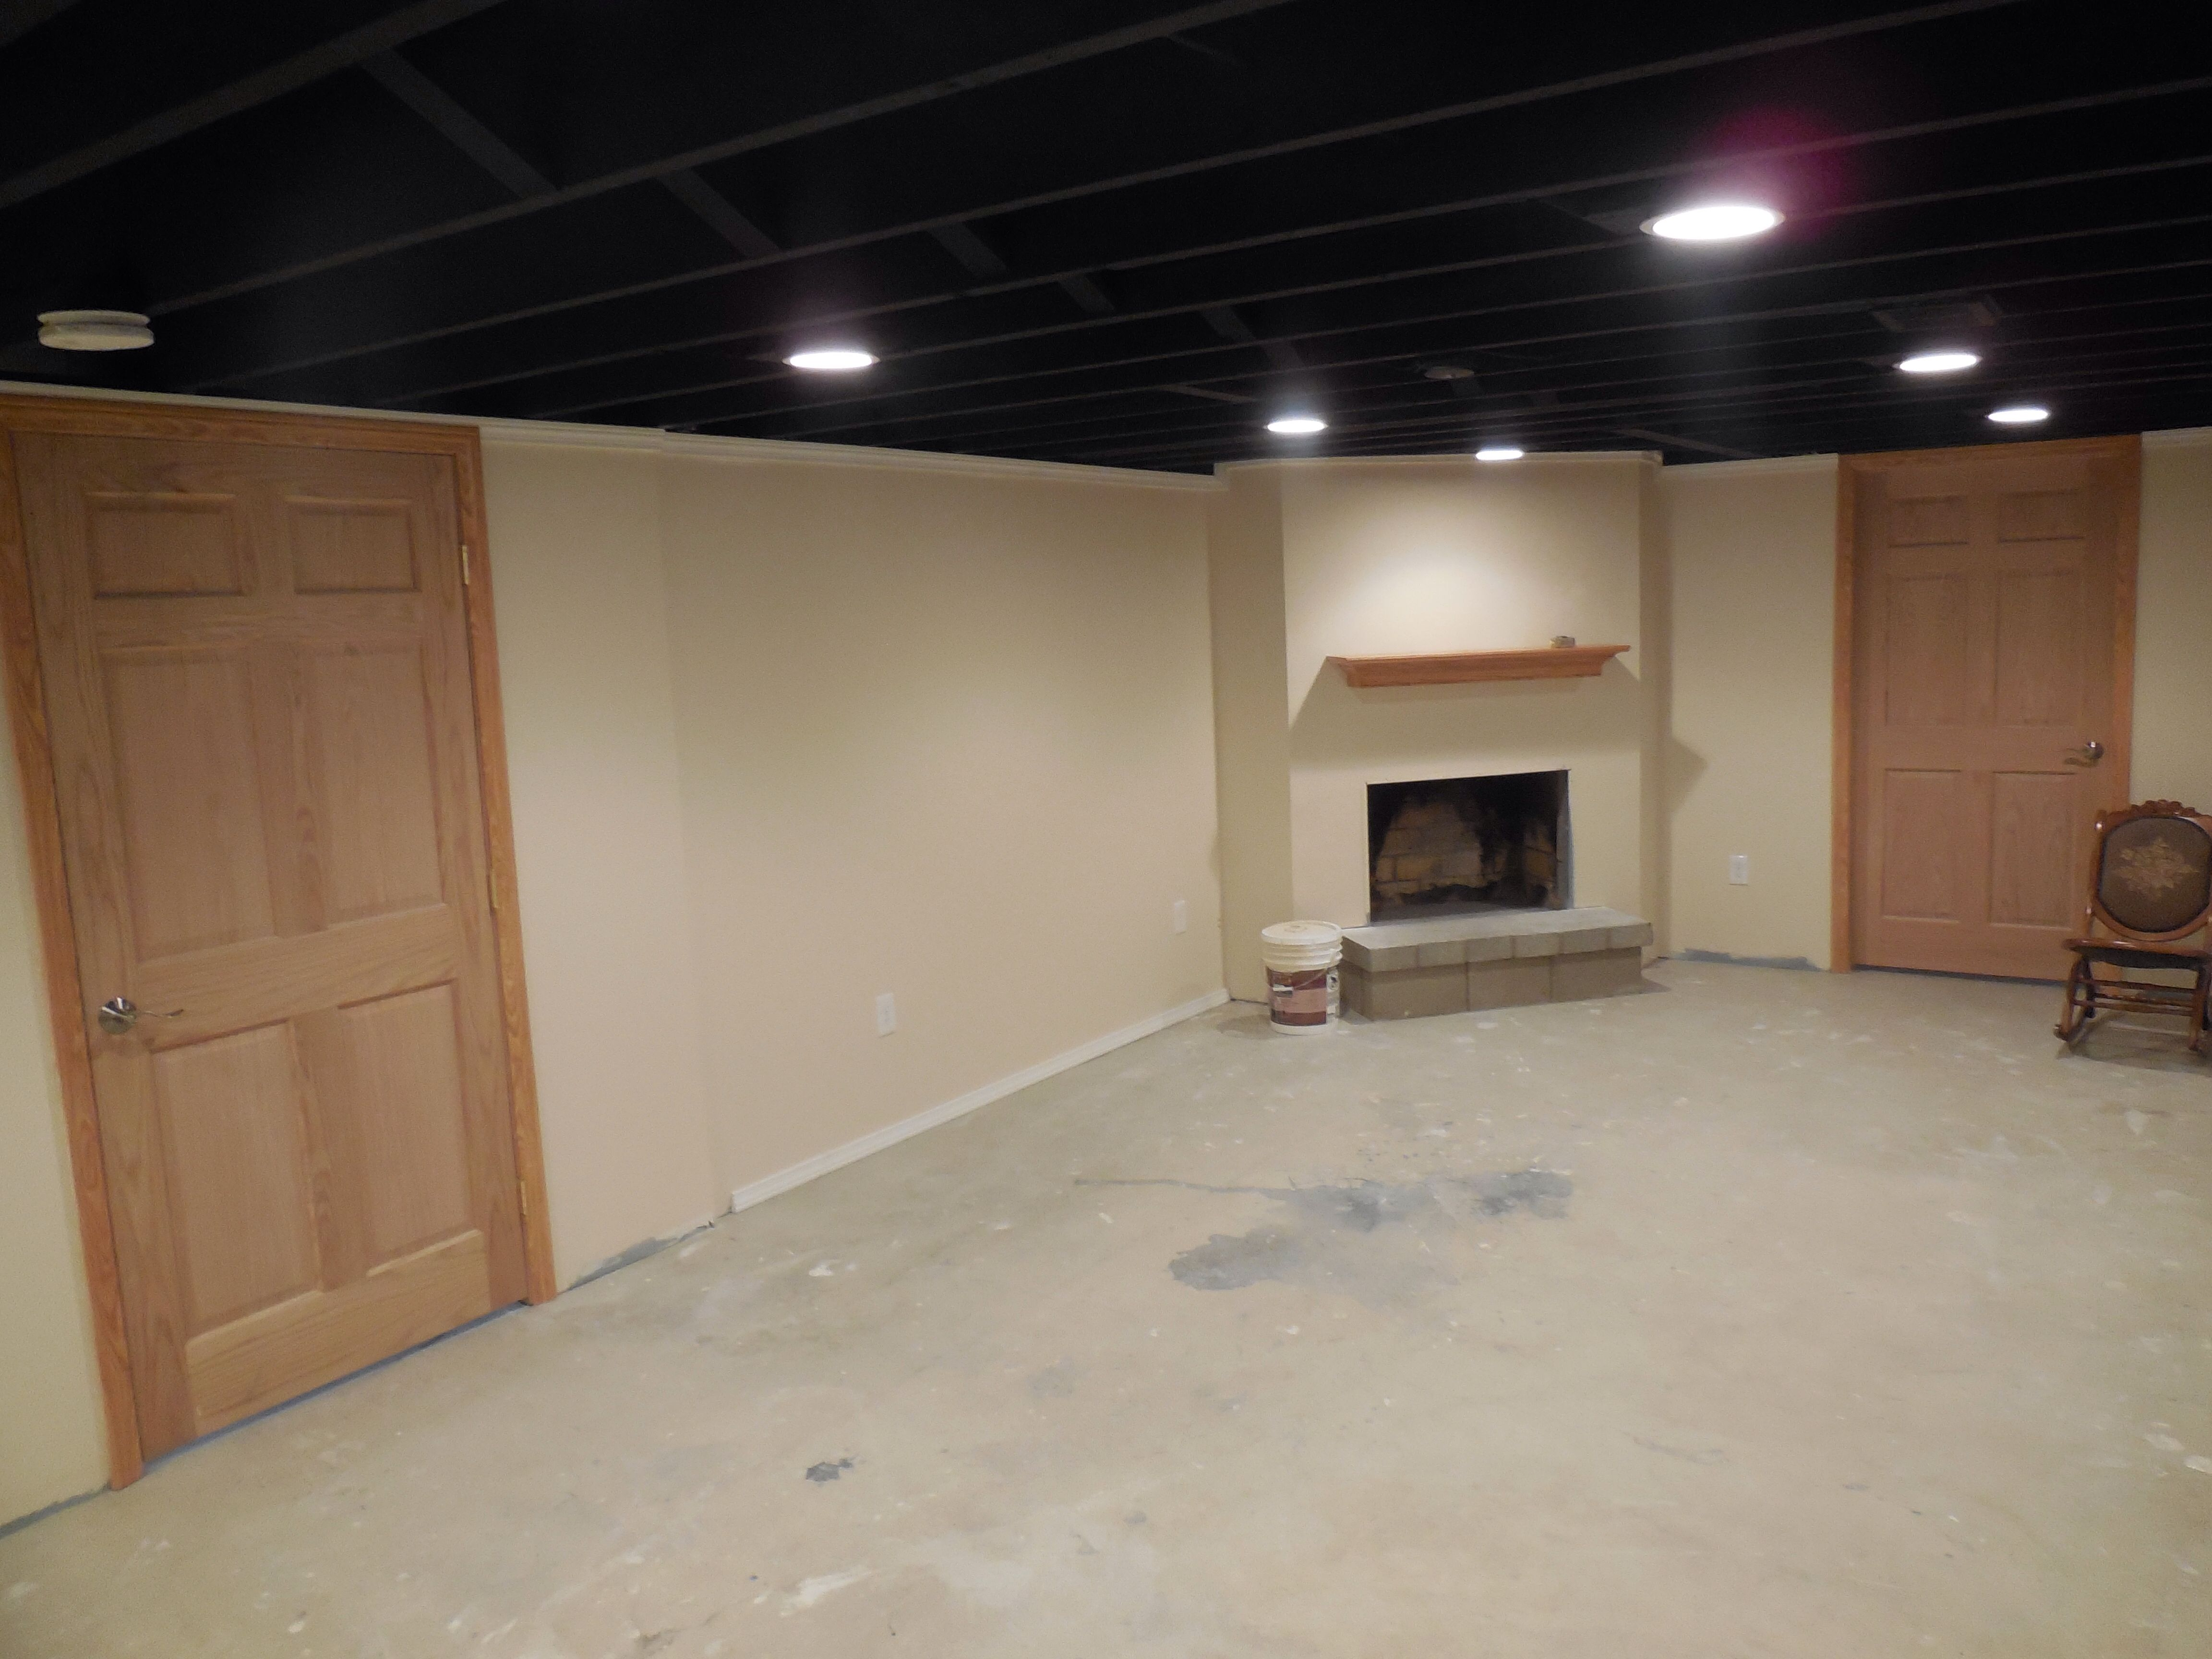 Basement Laundry Room Ideas Unfinished Small